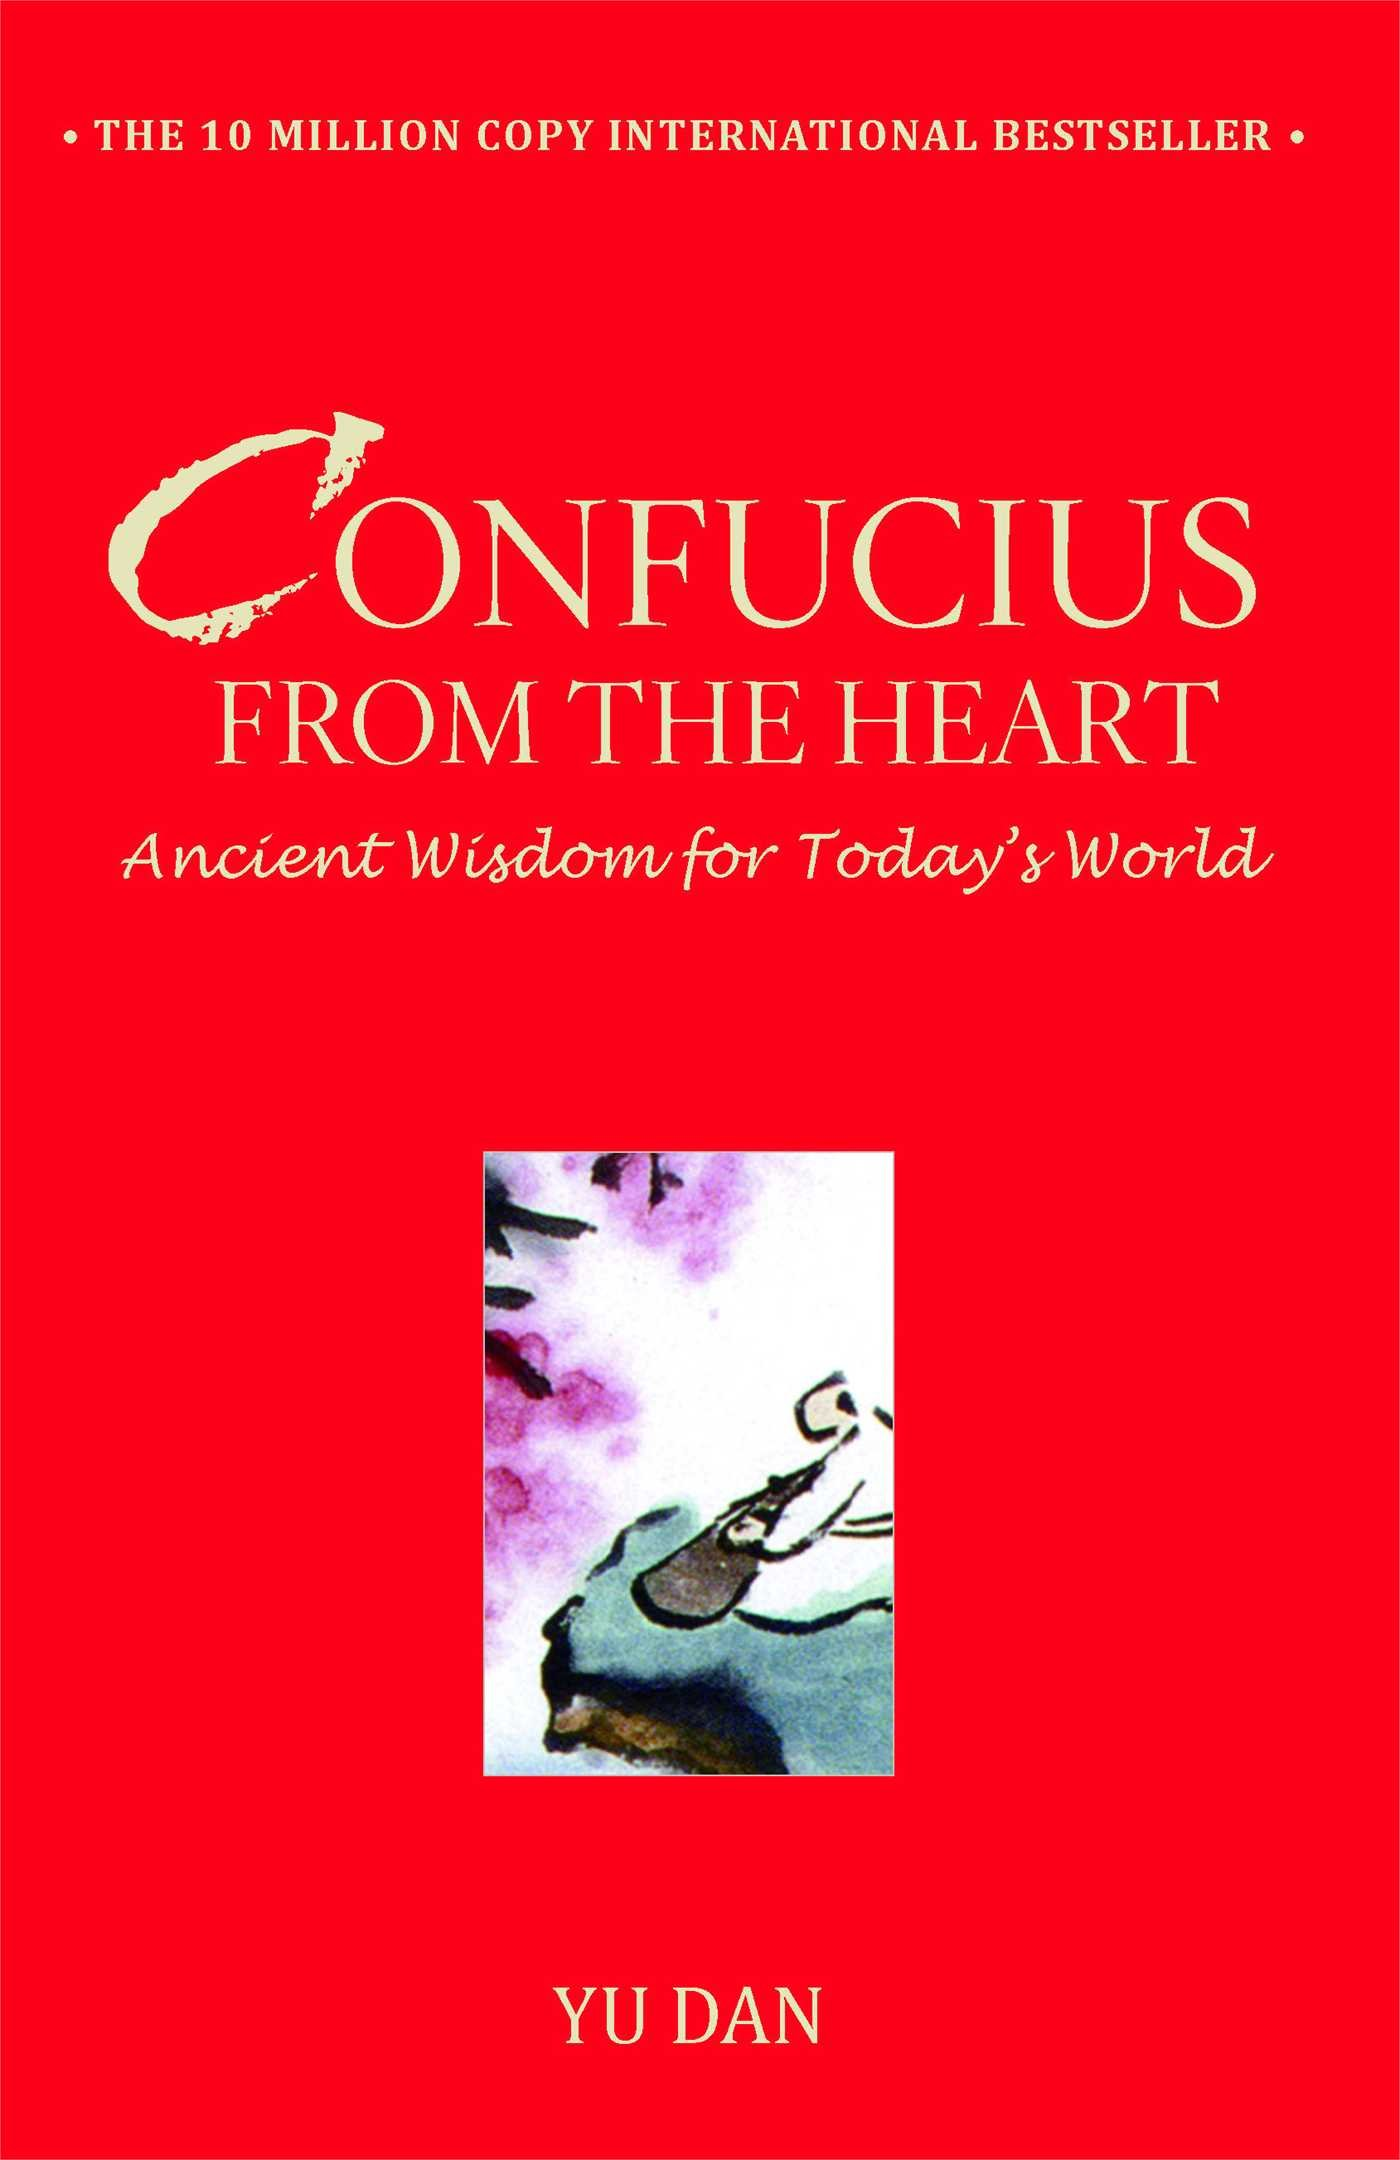 Confucius from the Heart: Ancient Wisdom for Today's World: Yu Dan:  9781416596578: Amazon.com: Books